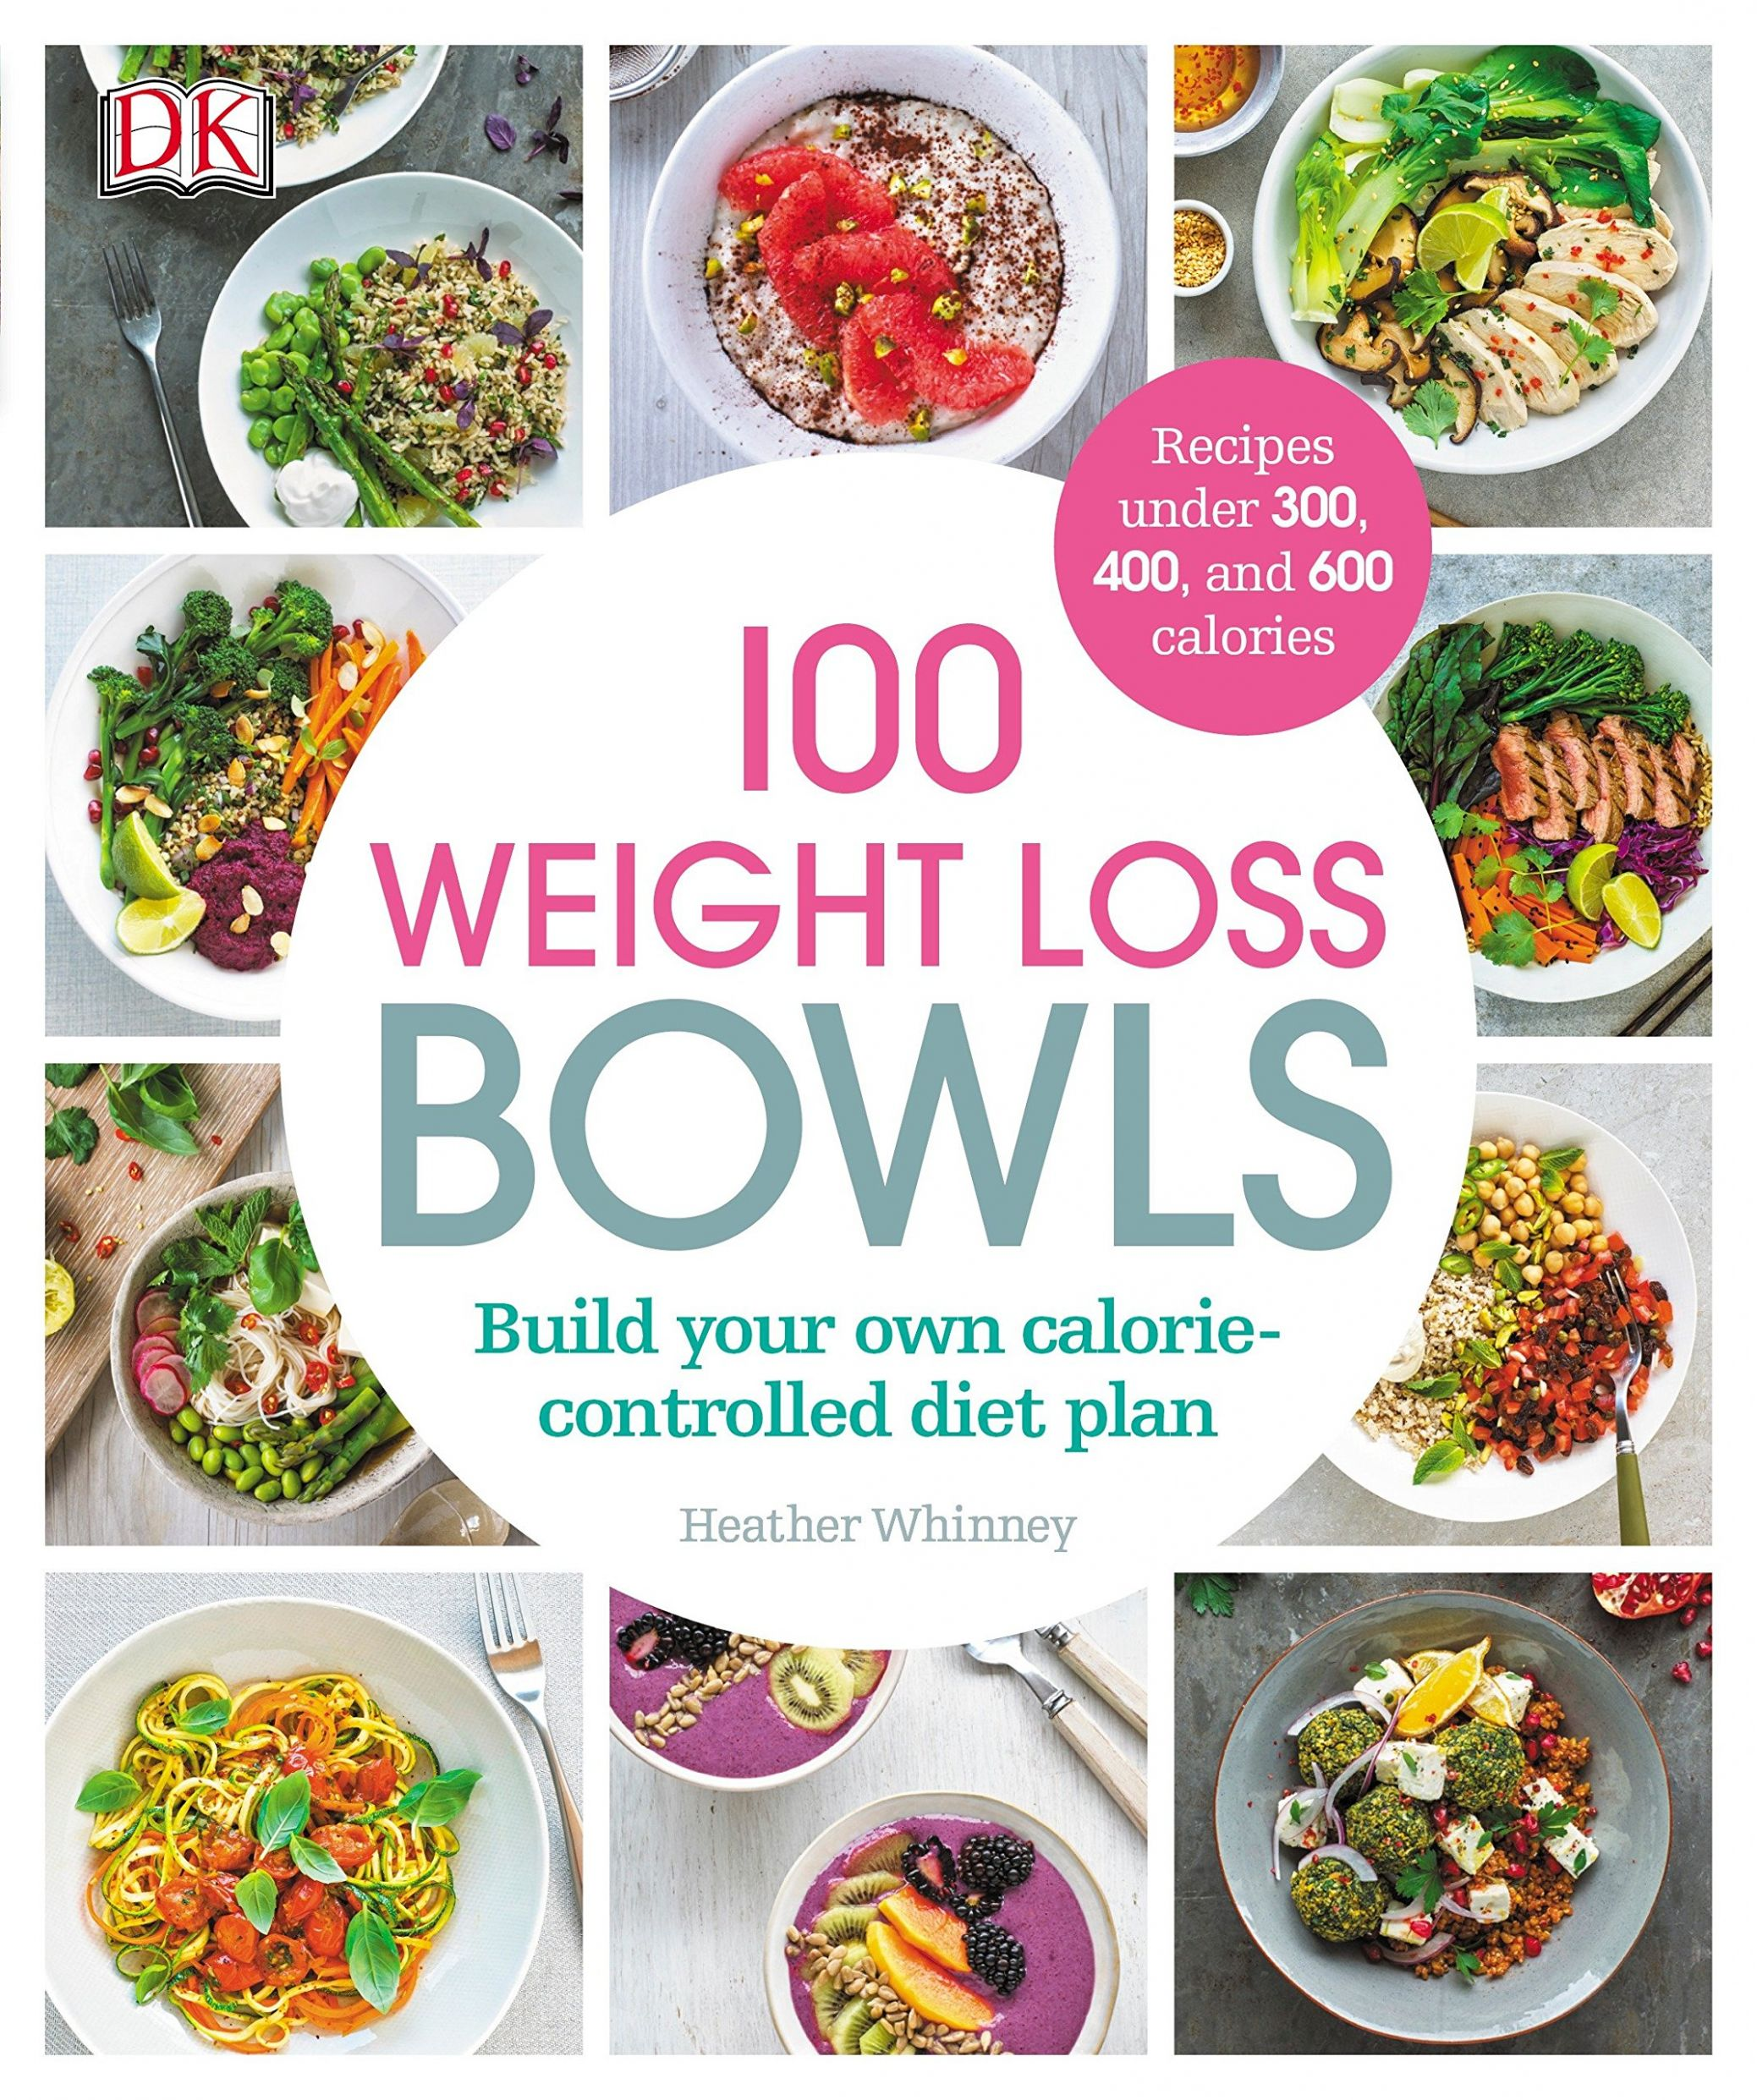 9 Weight Loss Bowls: Build your own calorie-controlled diet plan ..